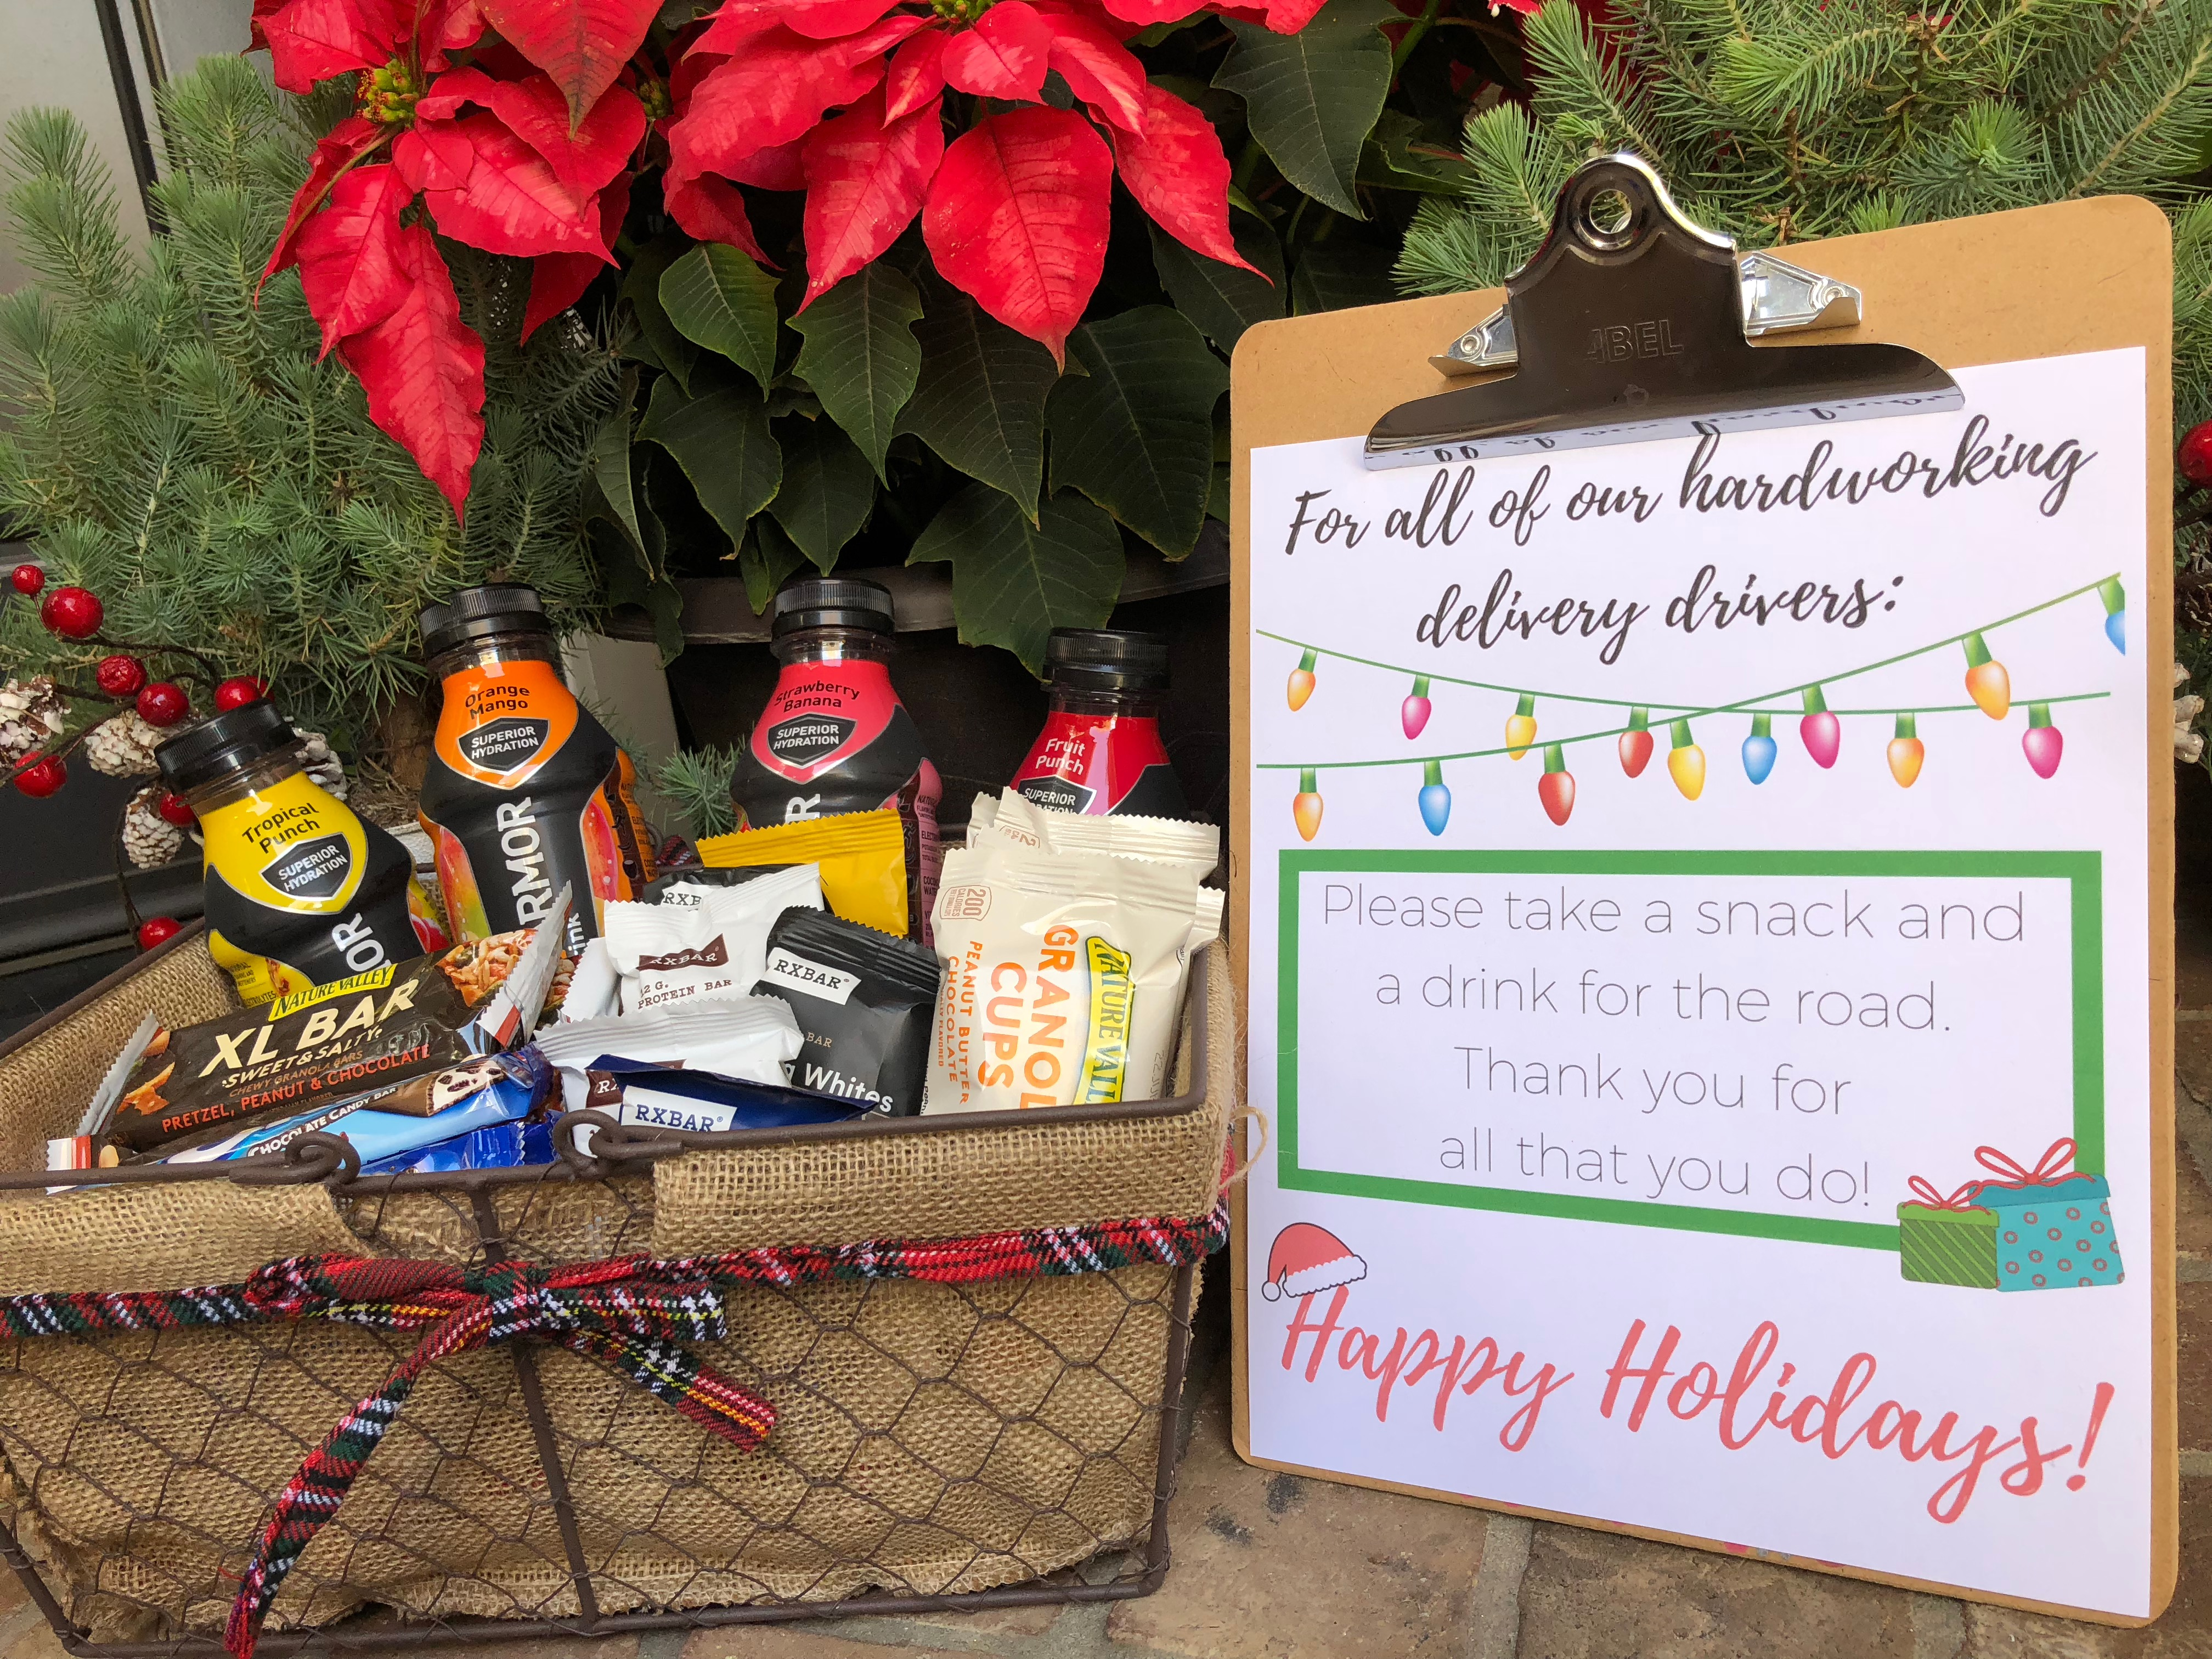 Looking for a way to say thank you to the delivery drivers who drop packages at your house this holiday season? We've got a really cute free printable with some ideas on how to show appreciation for those delivery drivers and others who make life a little easier for you. FREE Holiday Delivery Driver Printable Sign!